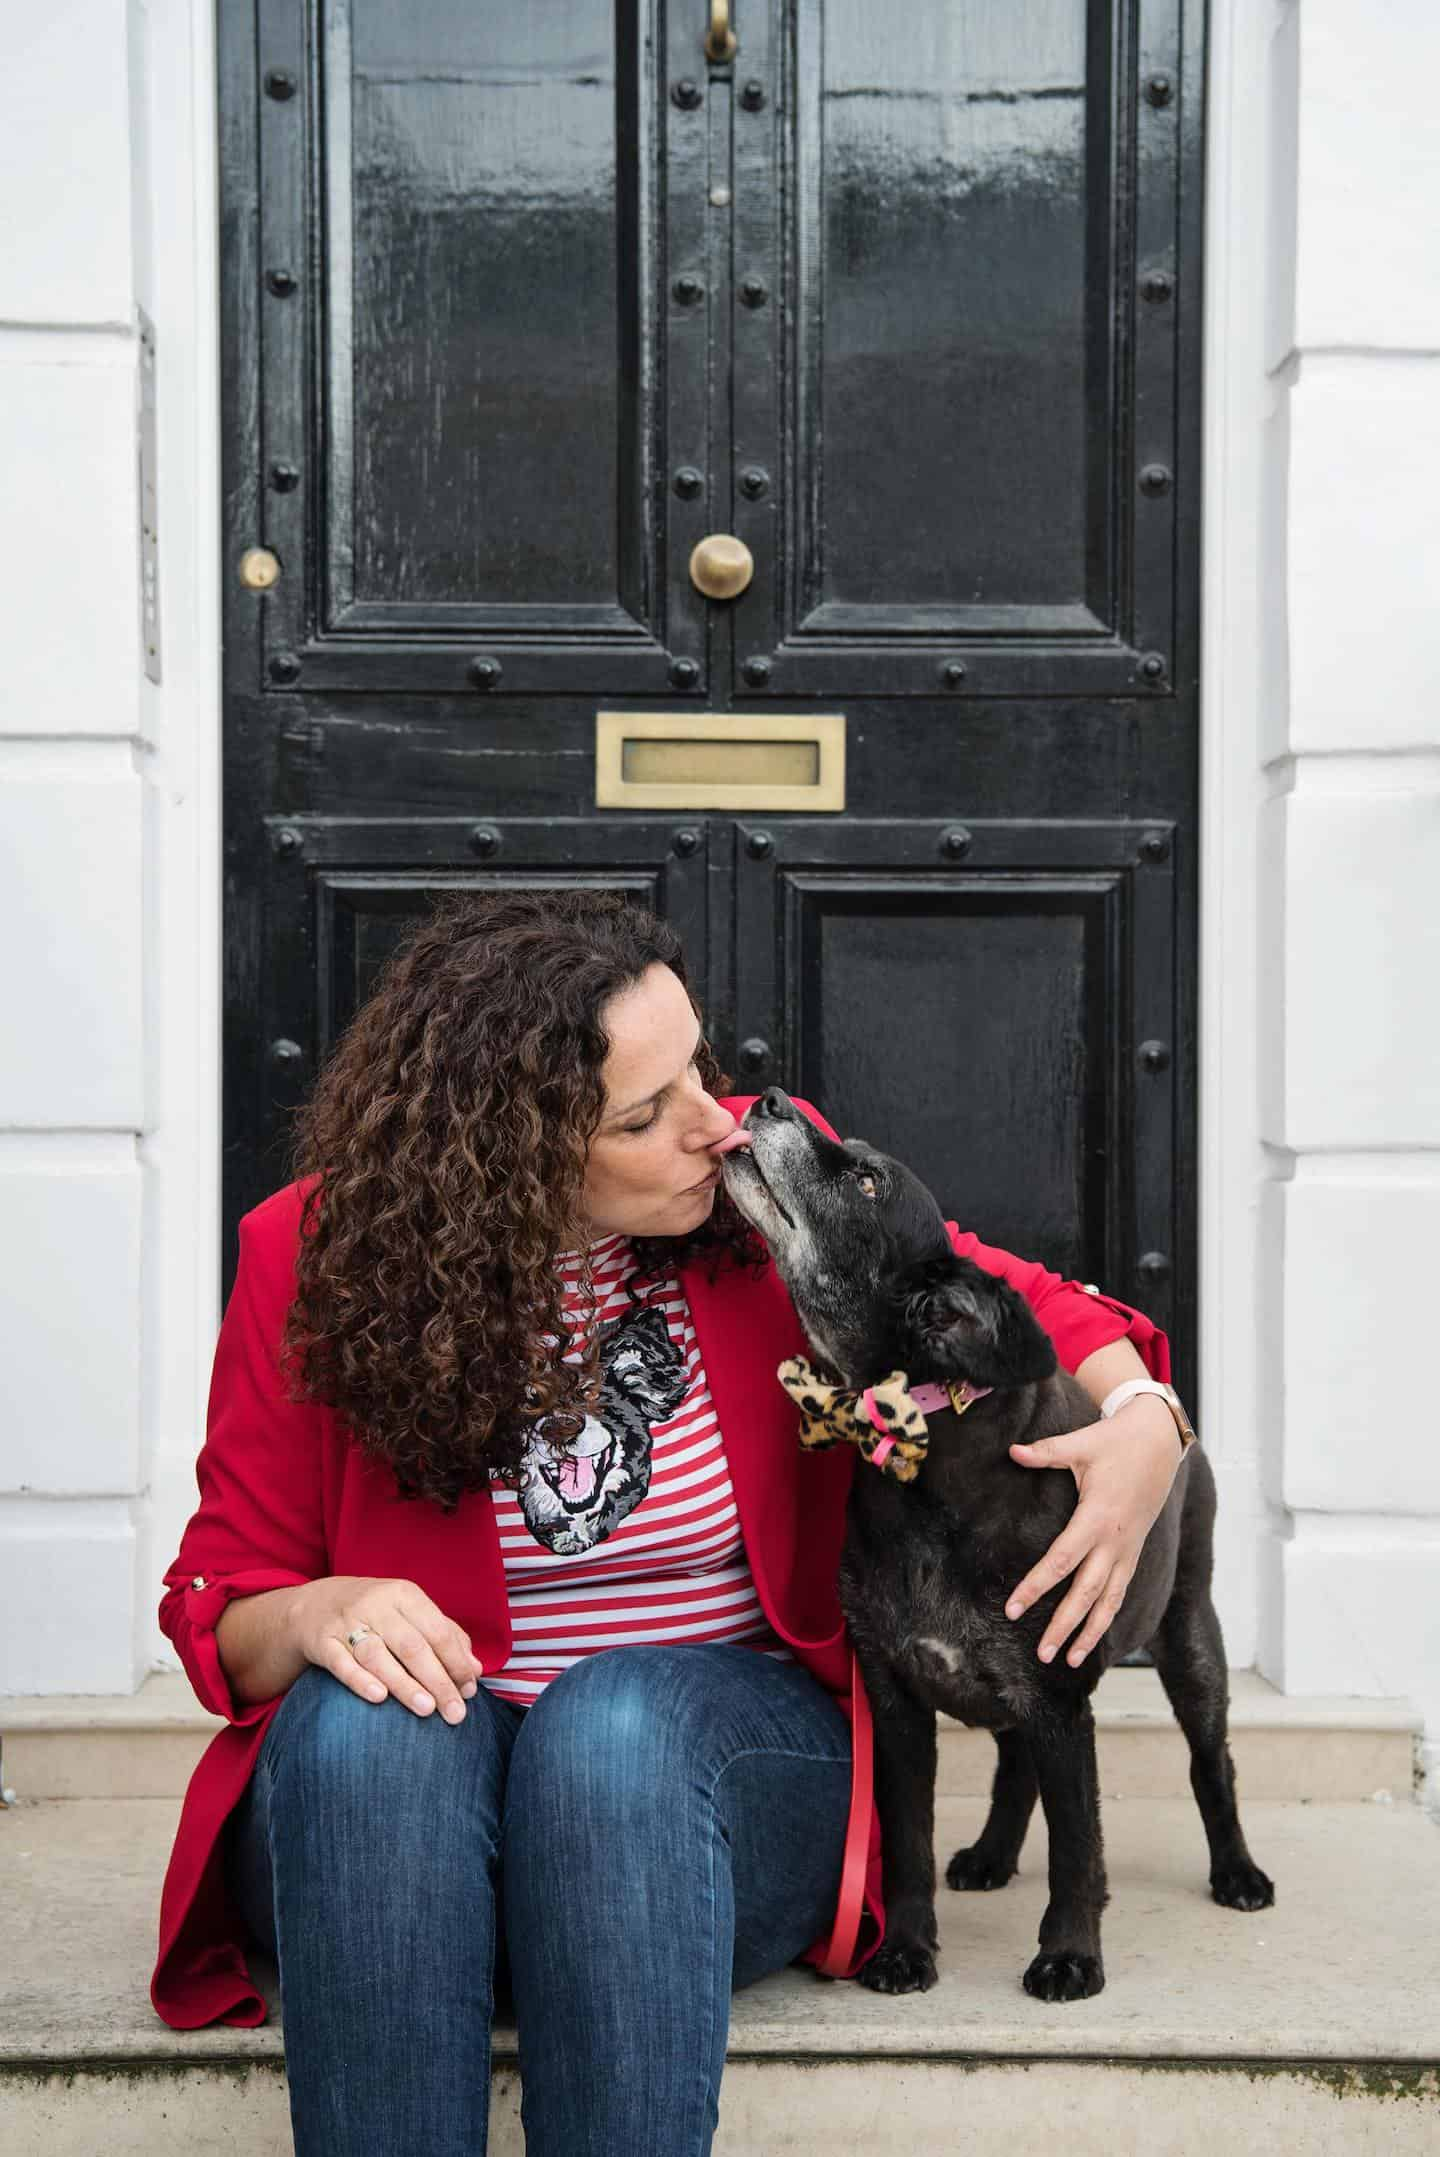 The Best Personalised Pet Gifts For Dog Owners - The Dogvine